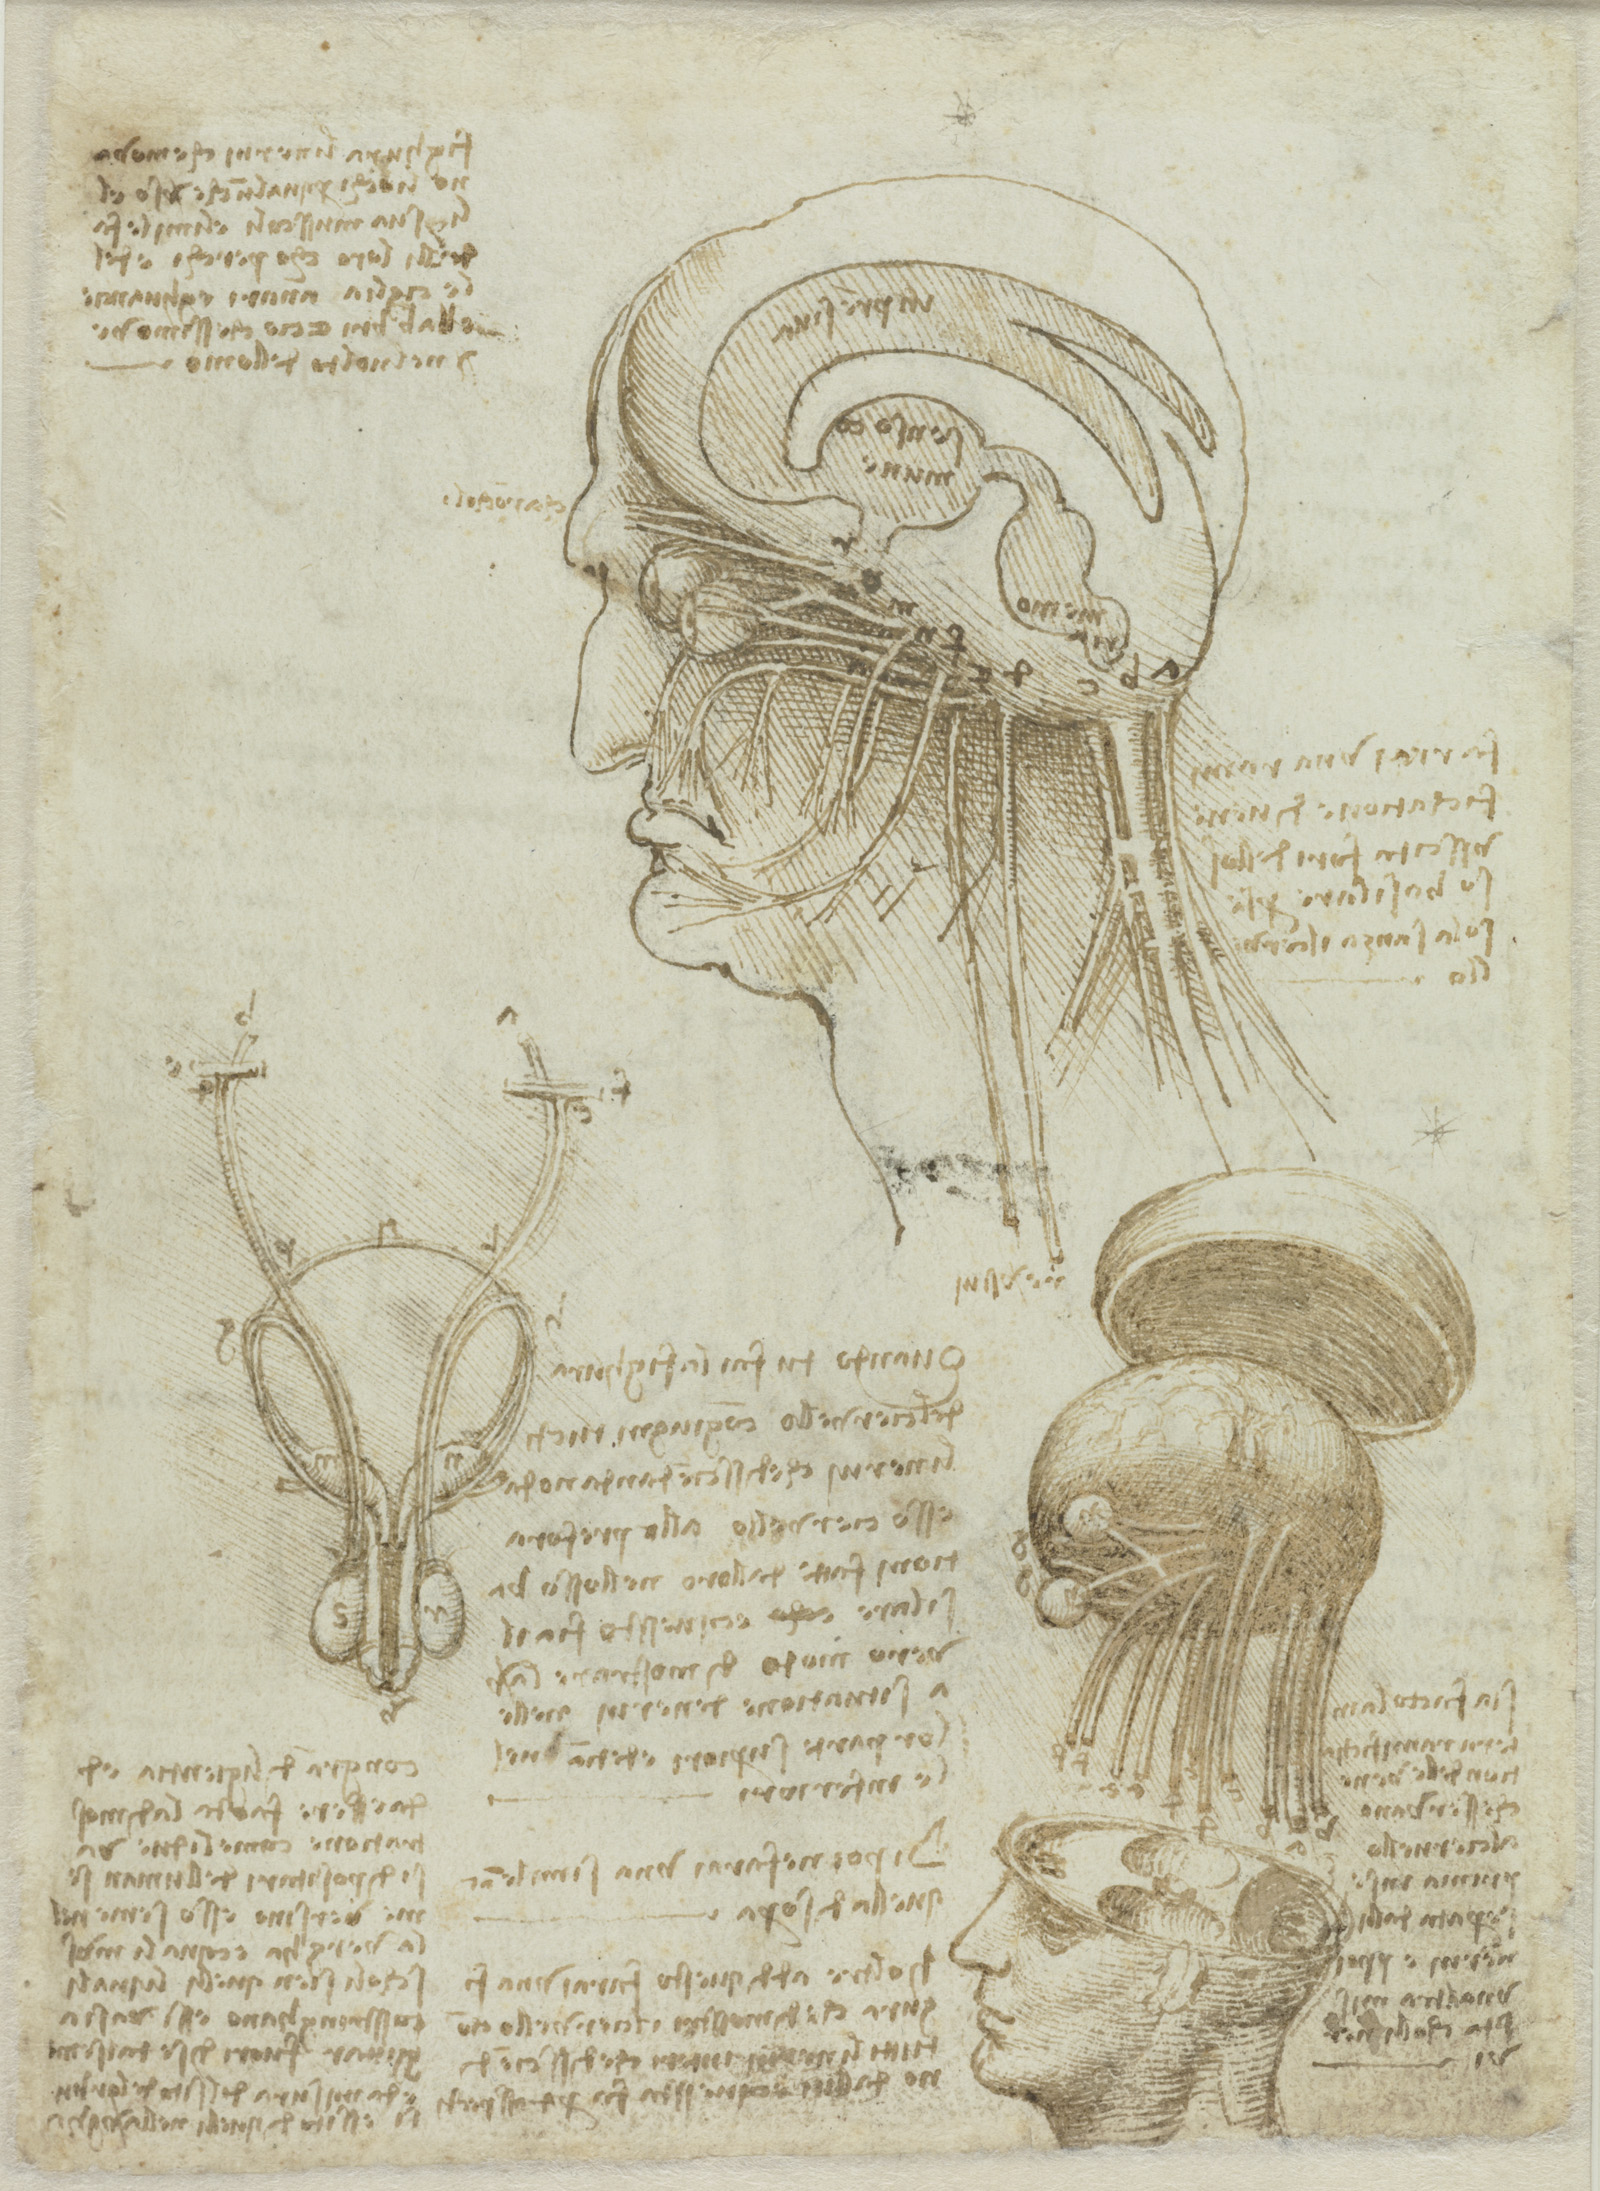 Imagine Da Vinci Could Witness Subcellular Brain Tissue Imaging - Brain Anatomy